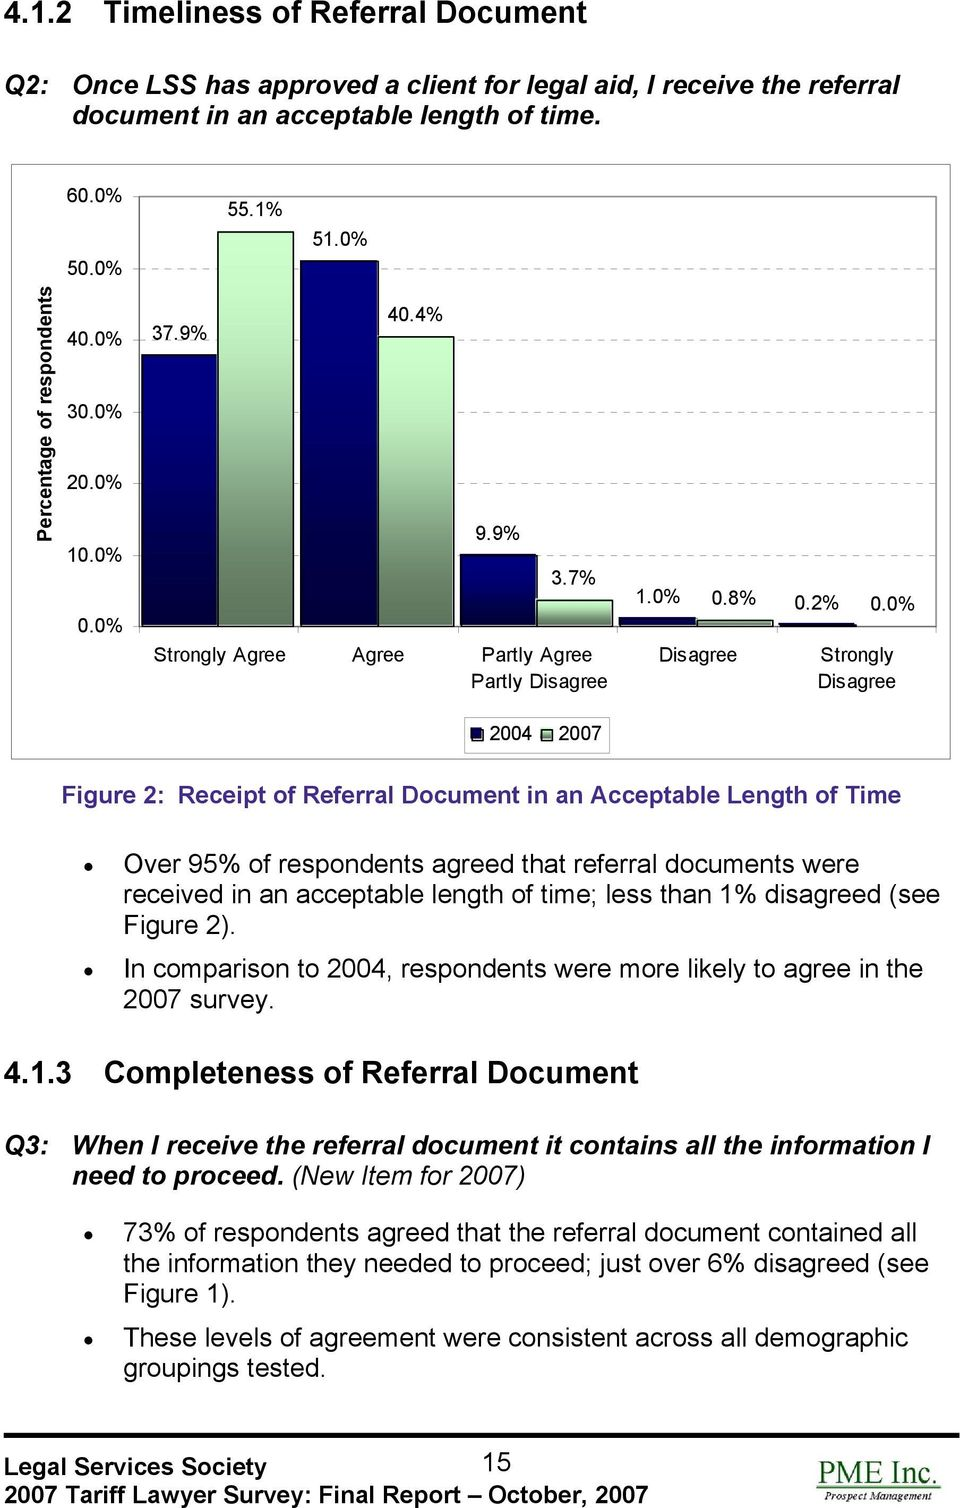 0% Strongly 2004 2007 Figure 2: Receipt of Referral Document in an Acceptable Length of Time Over 95% of respondents agreed that referral documents were received in an acceptable length of time; less